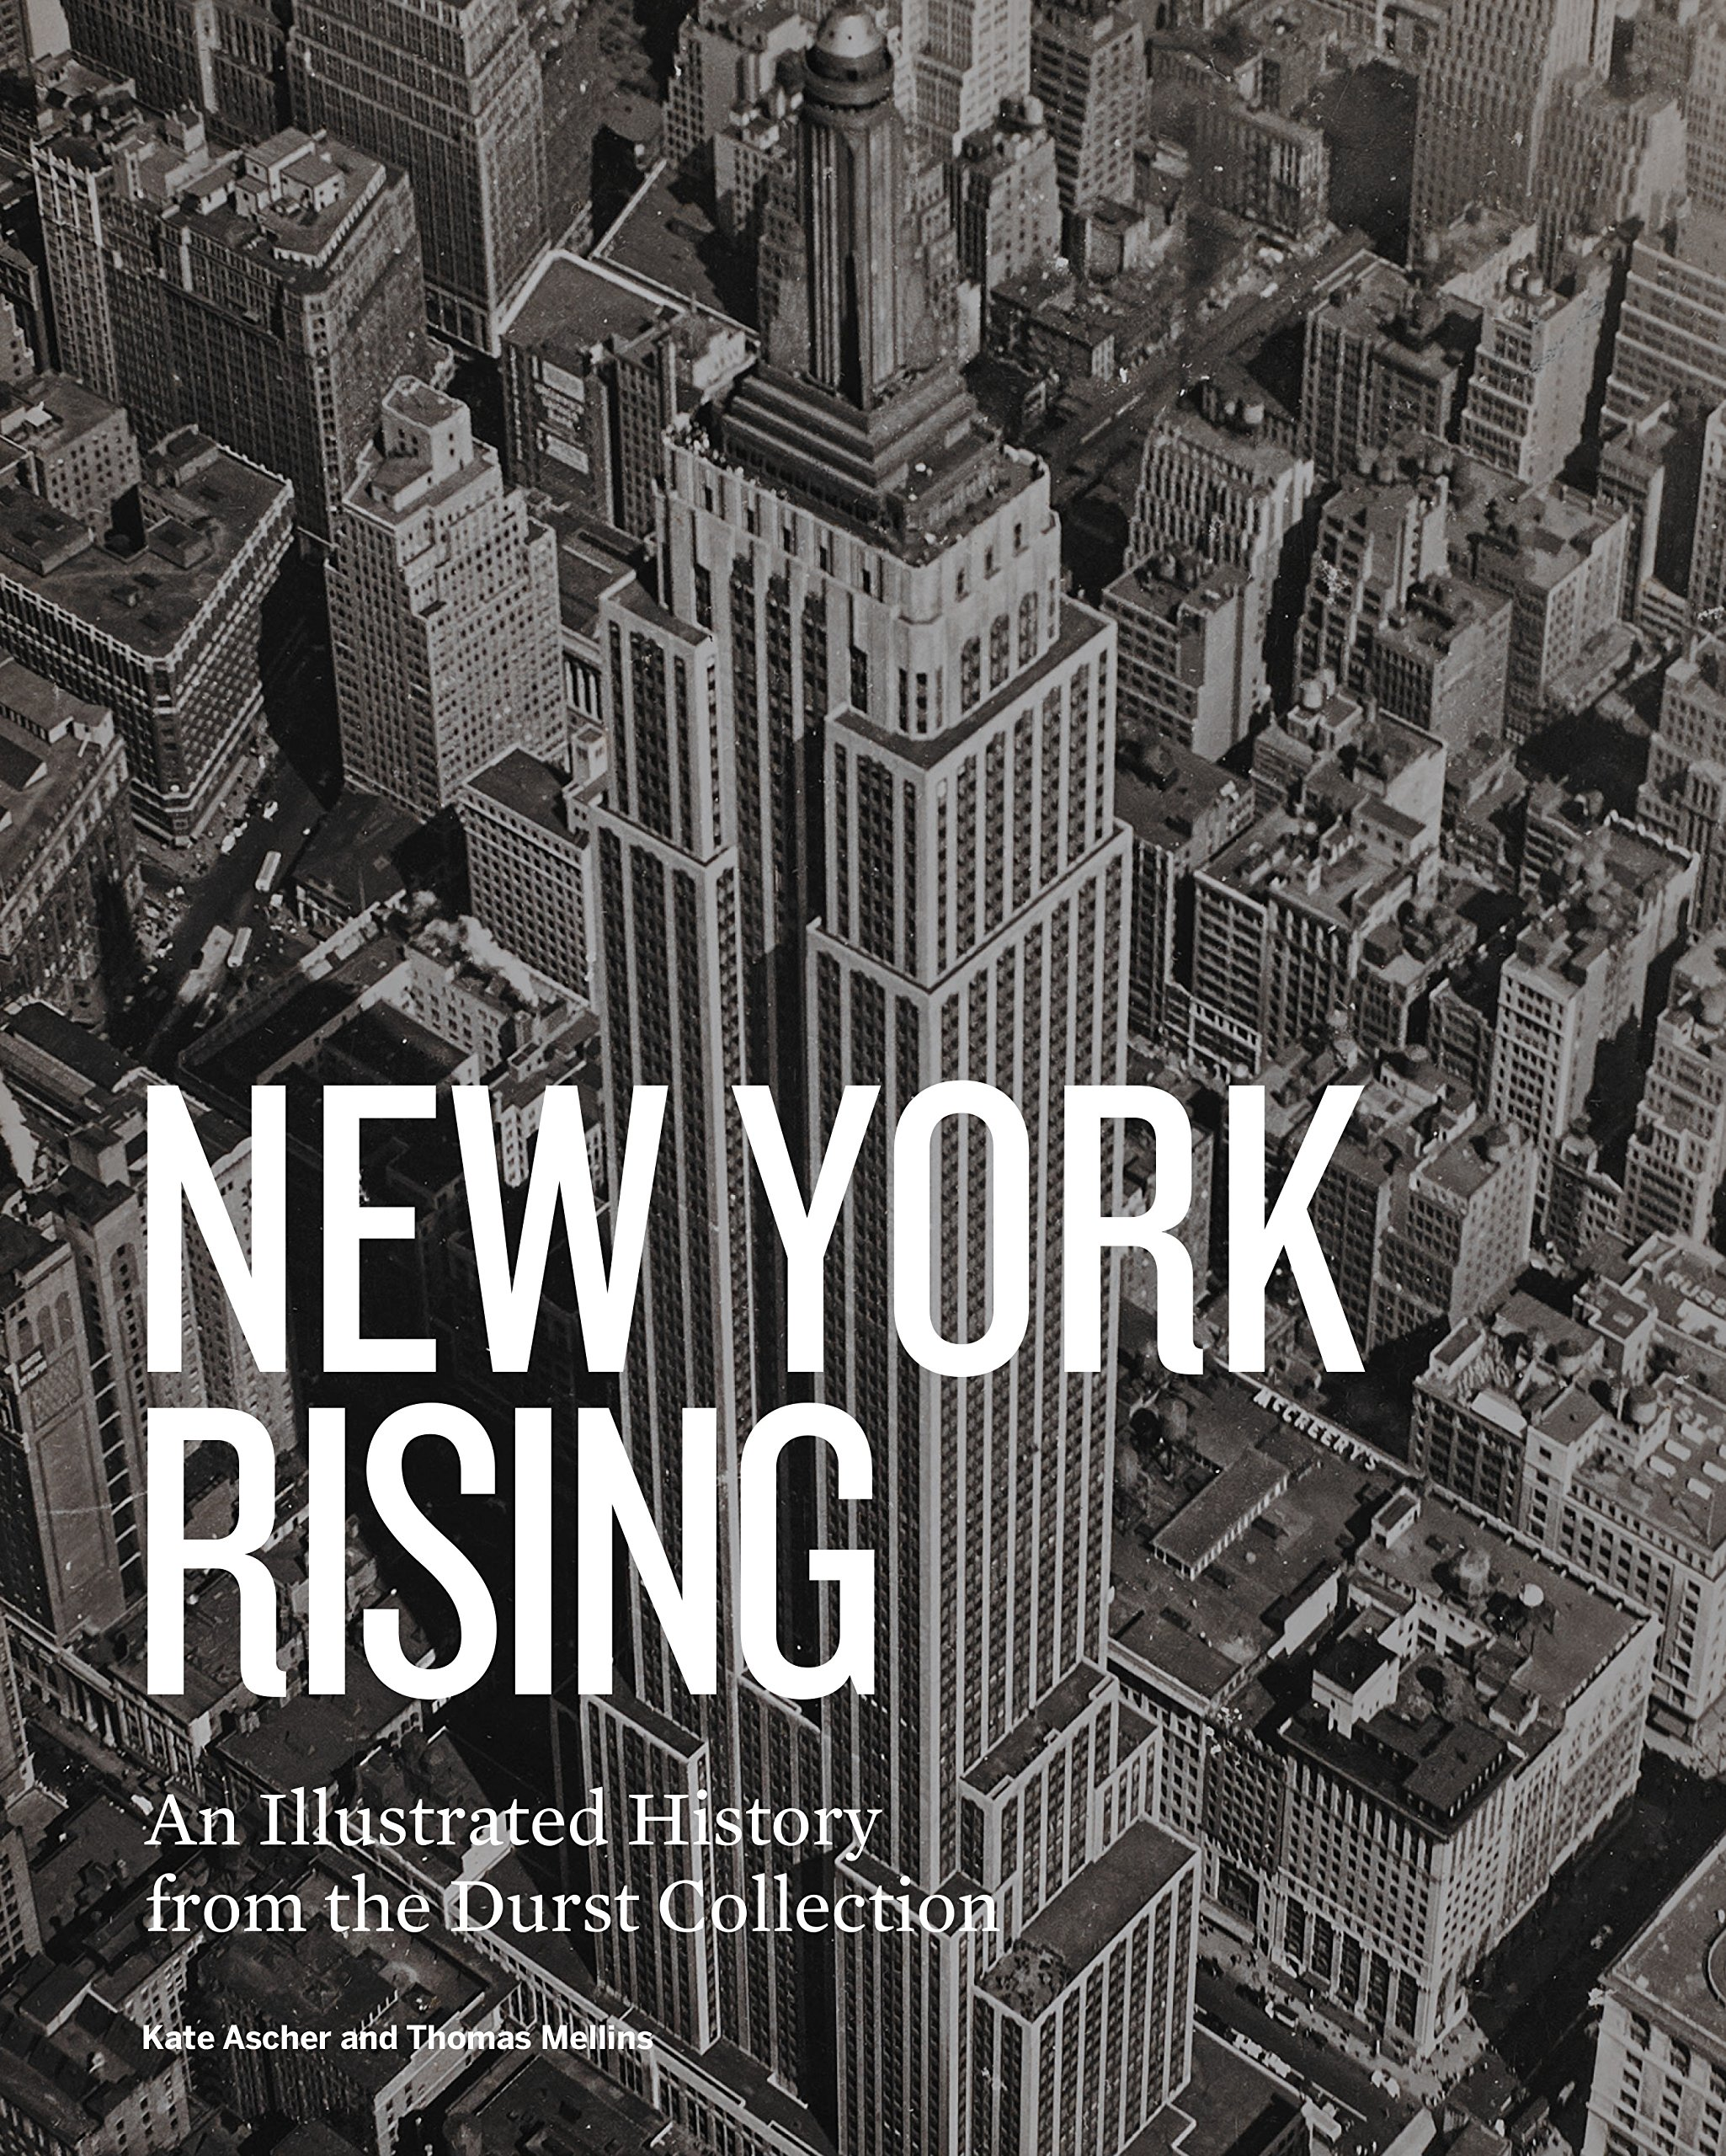 New York Rising An Illustrated History From The Durst Collection 18061circuitconstructionkitjpg Thomas Mellins Kate Ascher 9781580934619 Books